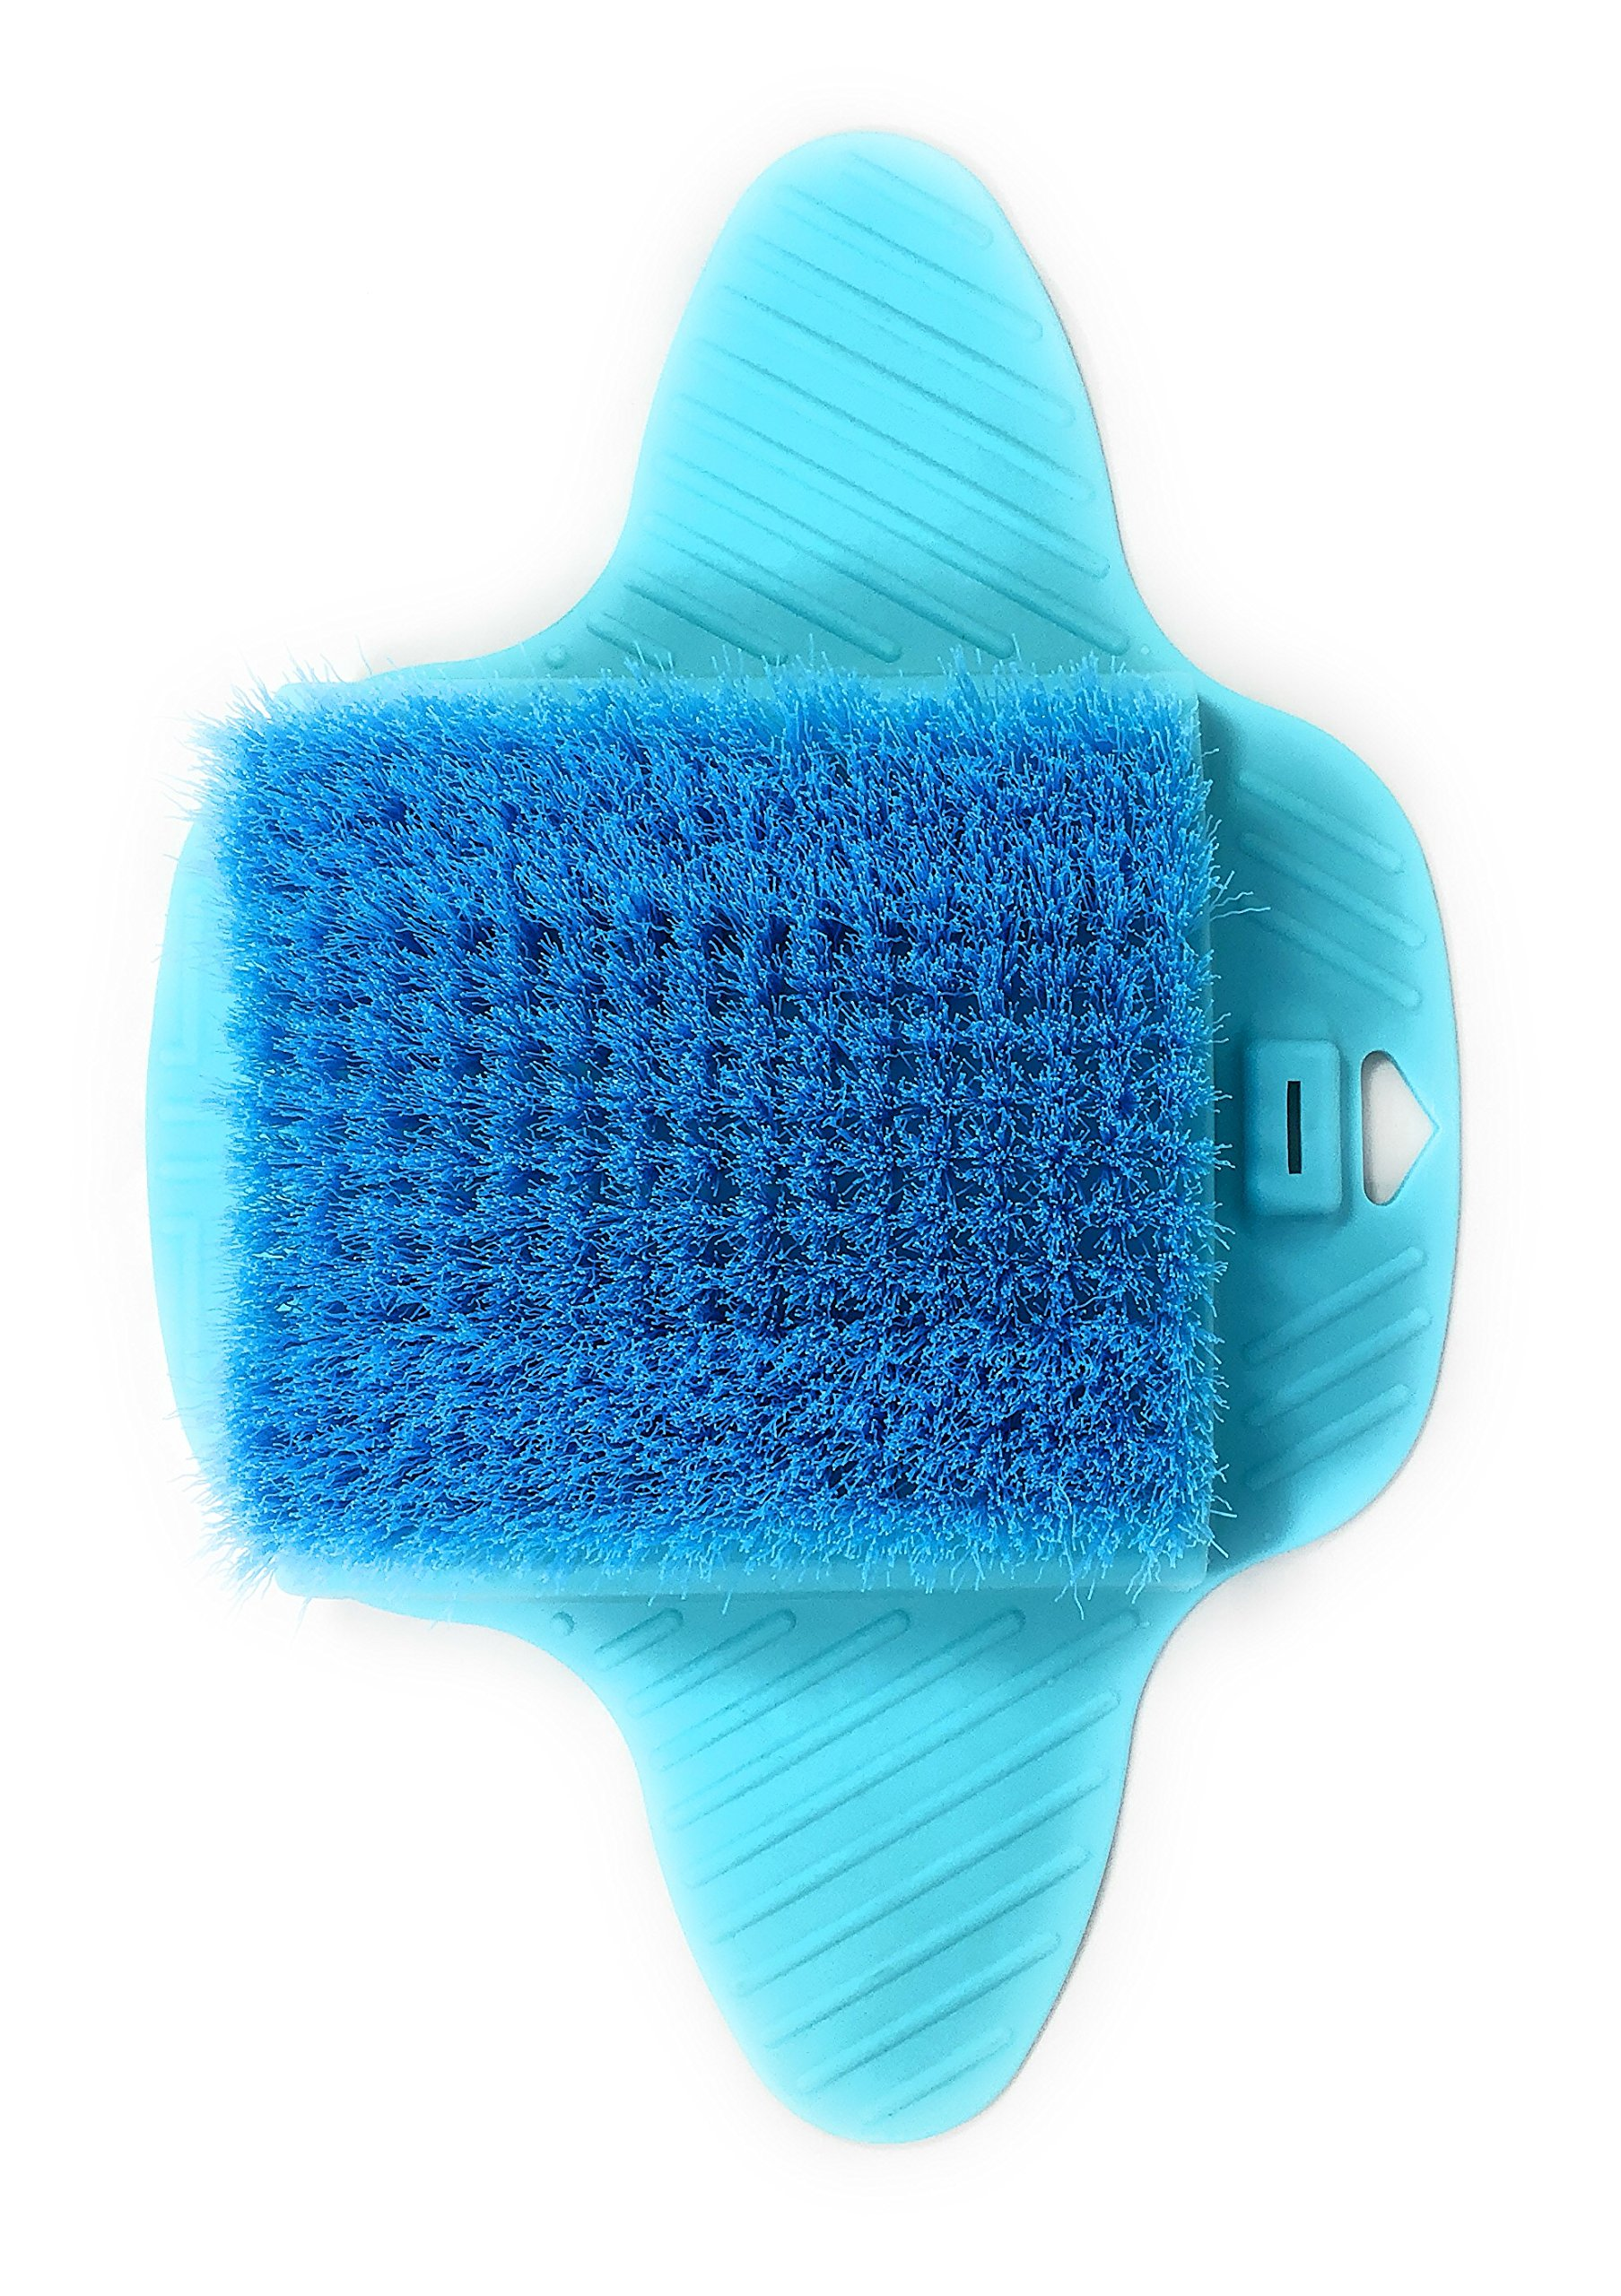 Foot Brush Scrubber - Ultimate Foot Brush Cleaner Helps with Dead Skin Fungus and Daily Foot Wash BY WWSG